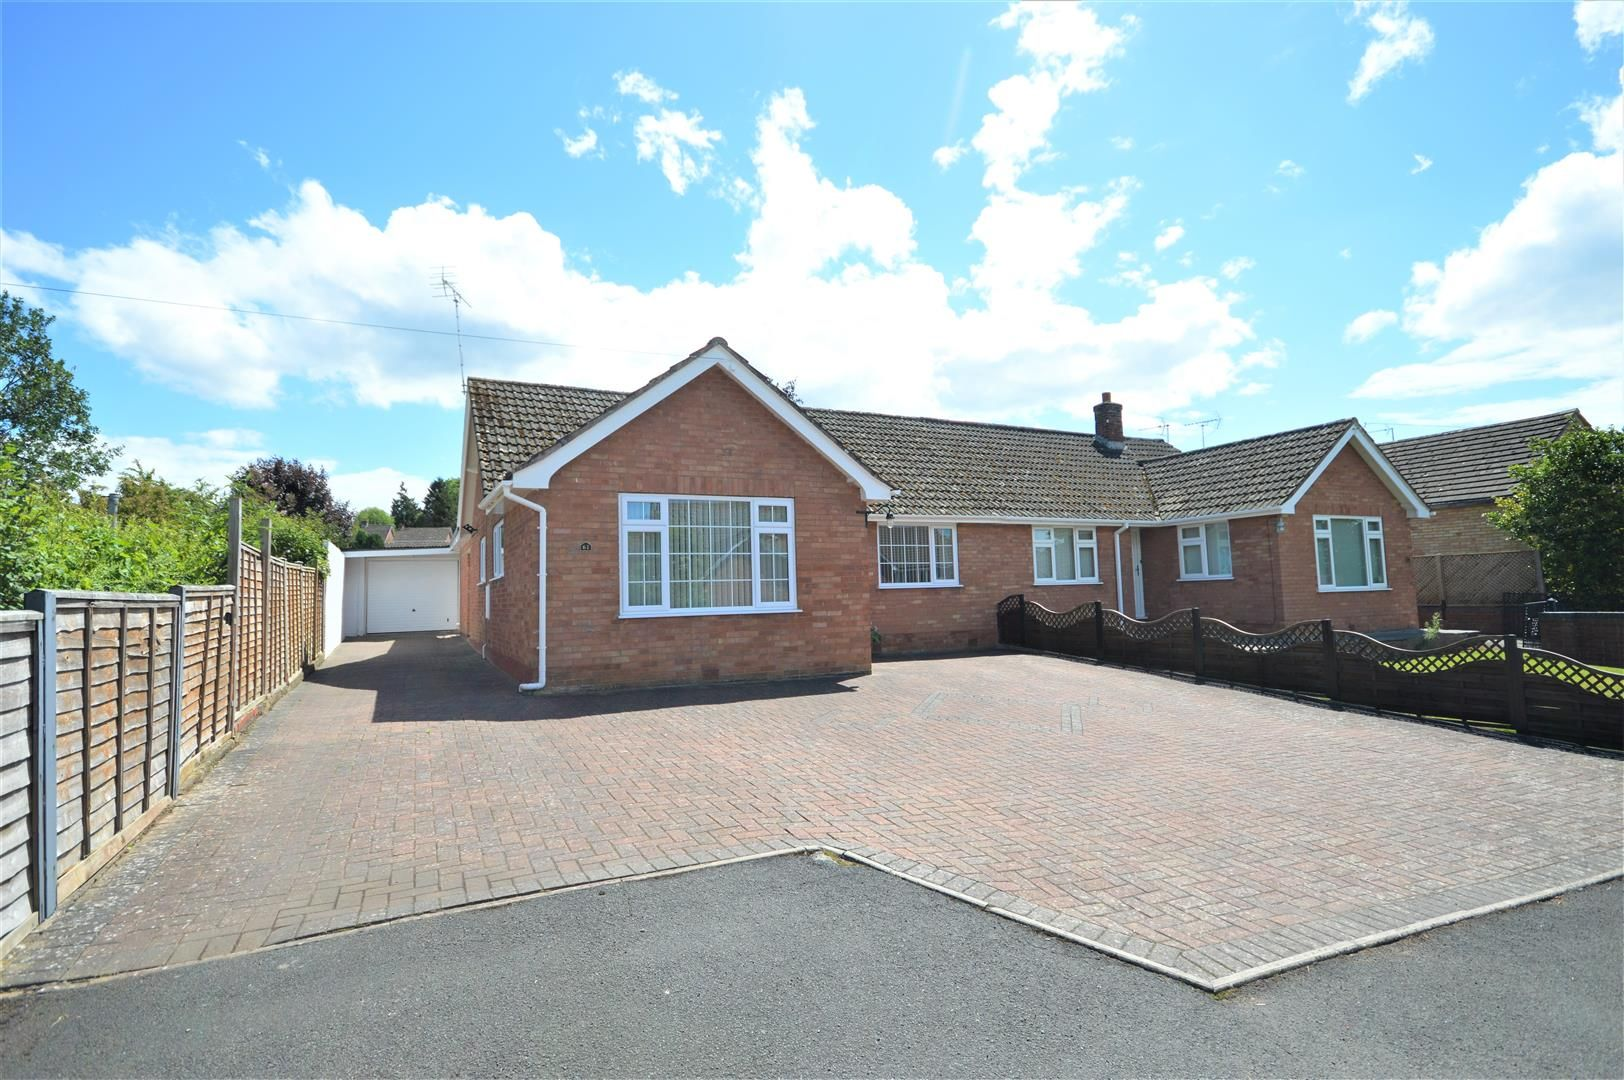 2 bed semi-detached-bungalow for sale in Leominster 1